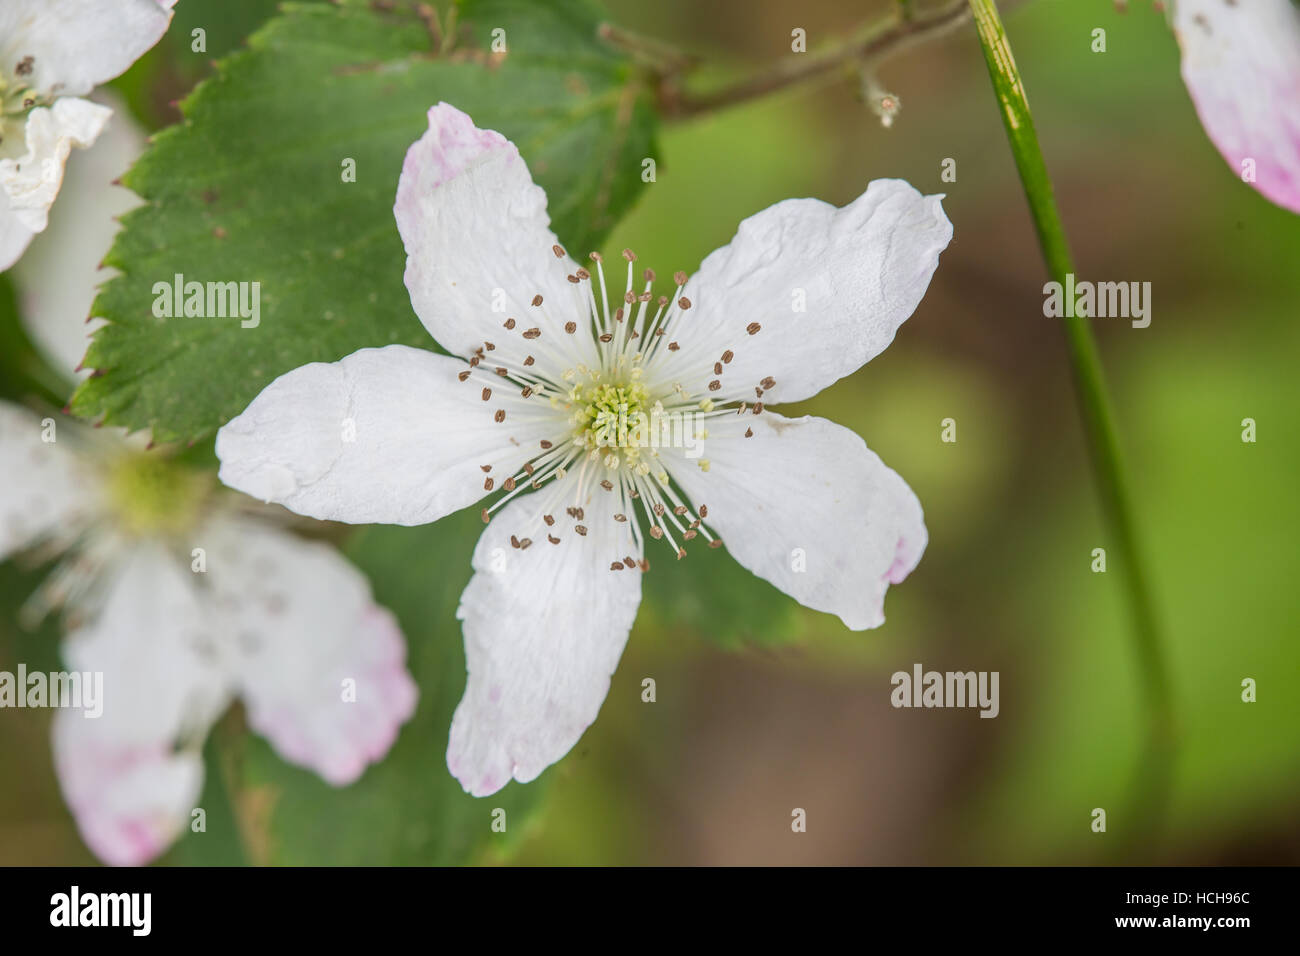 White flower five petals yellow stock photos white flower five white flower with five petals in star shape showing stamen and a green center with leaves mightylinksfo